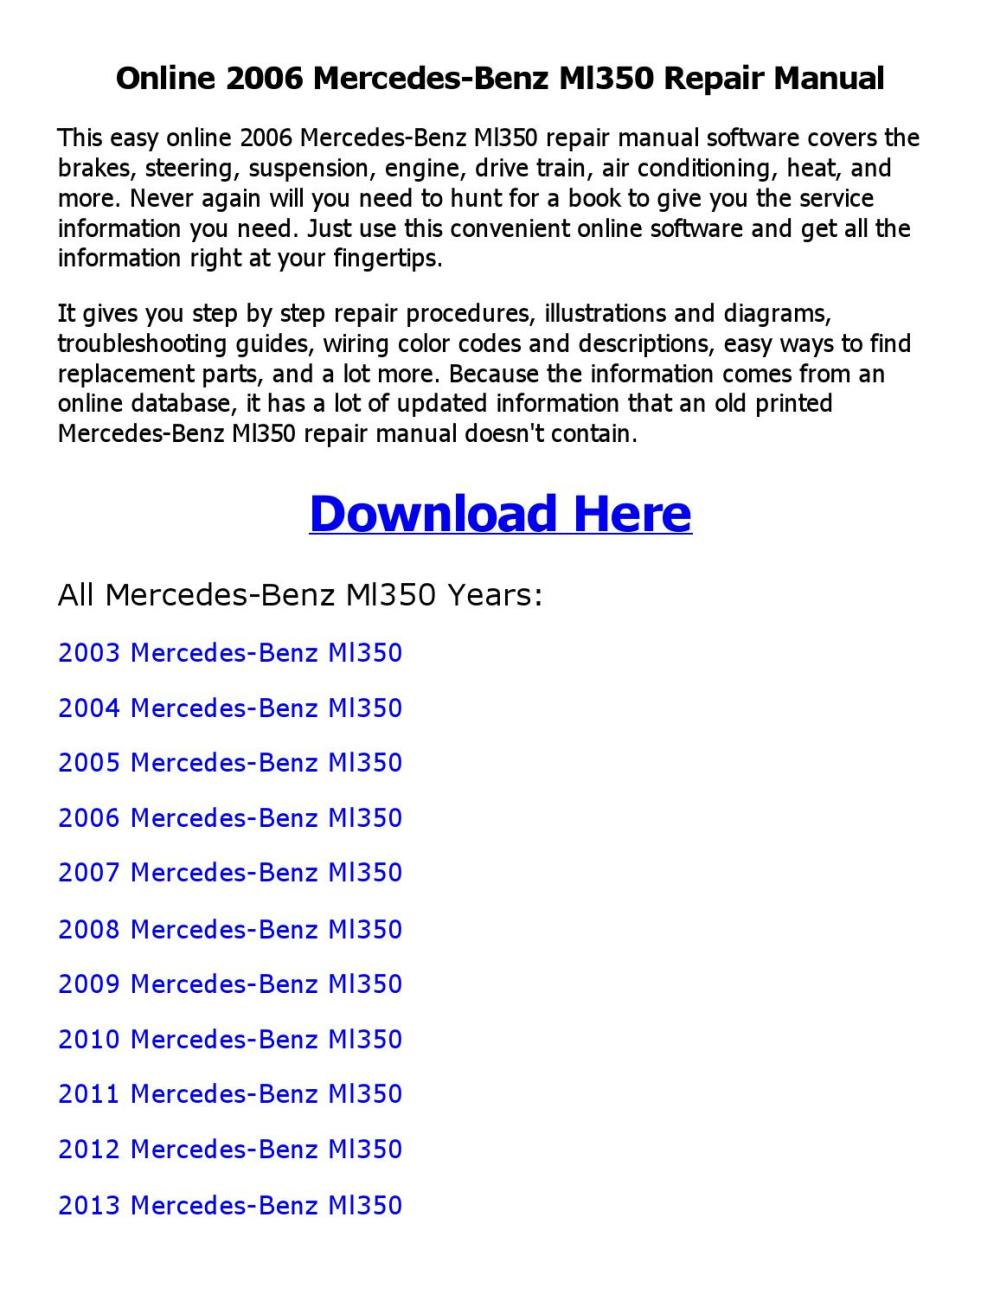 medium resolution of 2006 mercedes benz ml350 repair manual online by coollang issuu